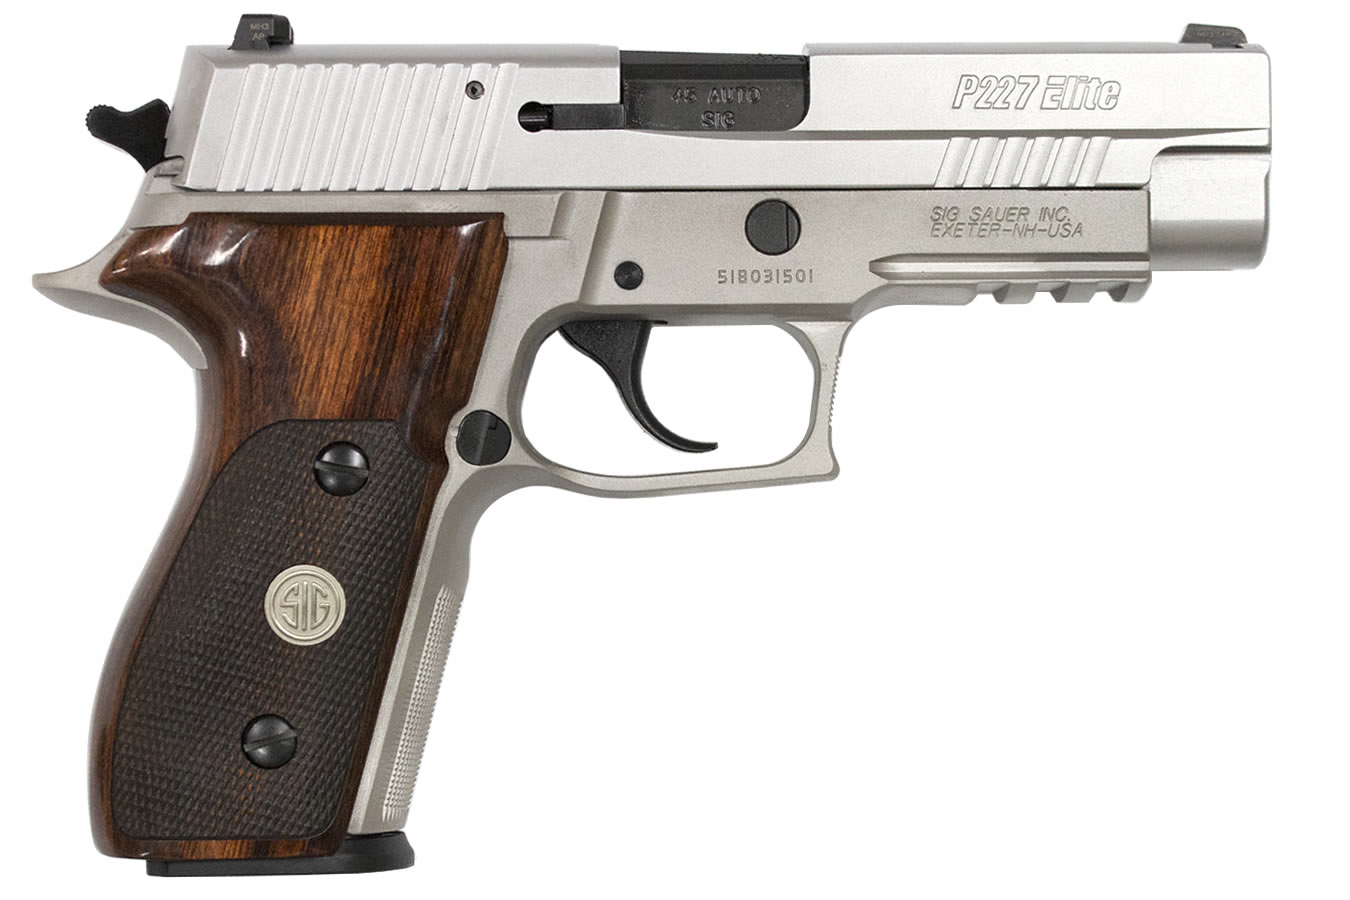 sig sauer p227 elite 45 acp alloy stainless with night sights